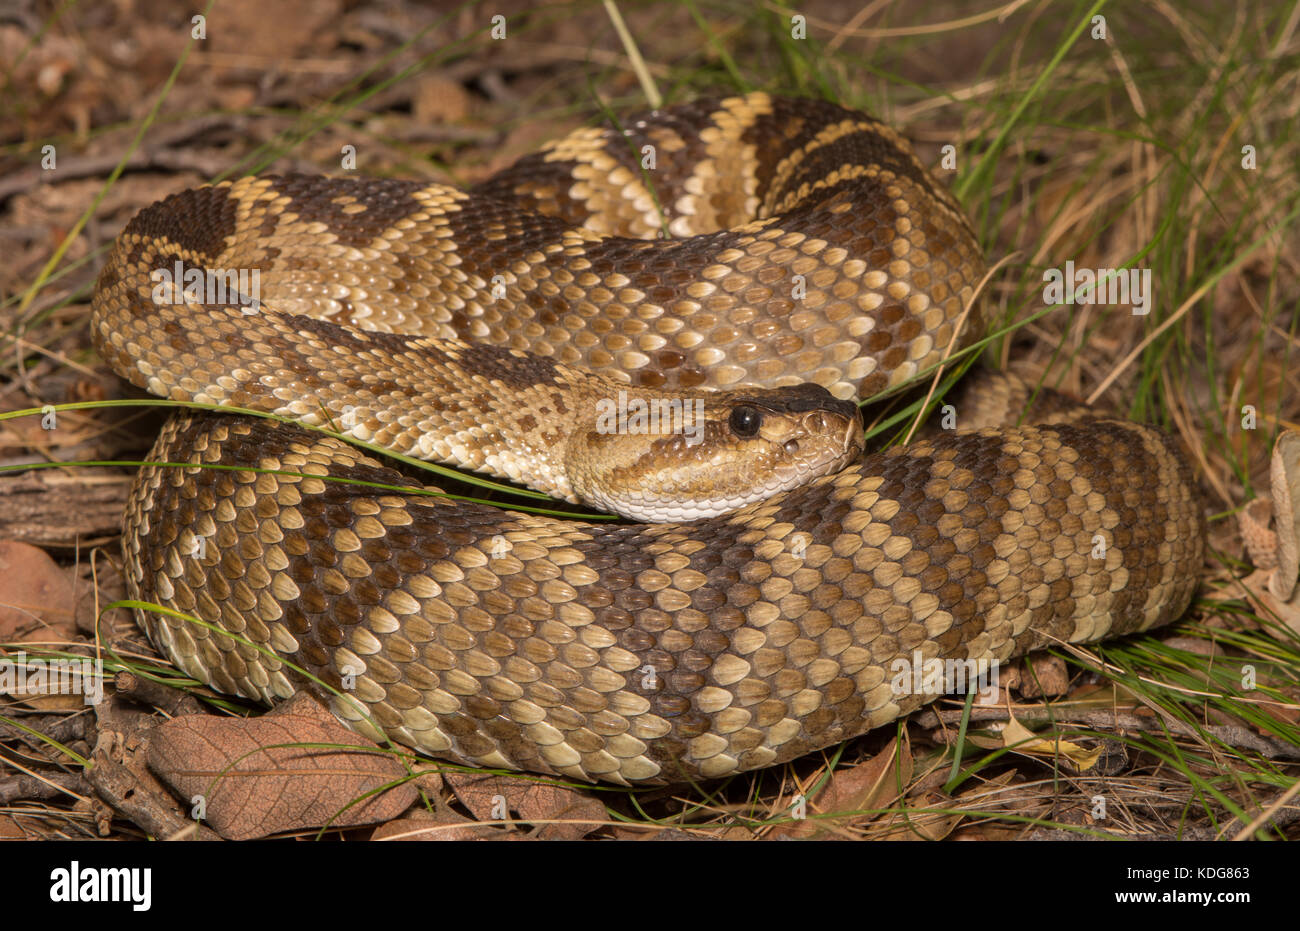 Western Black-tailed Rattlesnake (Crotalus molossus) from Cochise County, Arizona, USA. Stock Photo